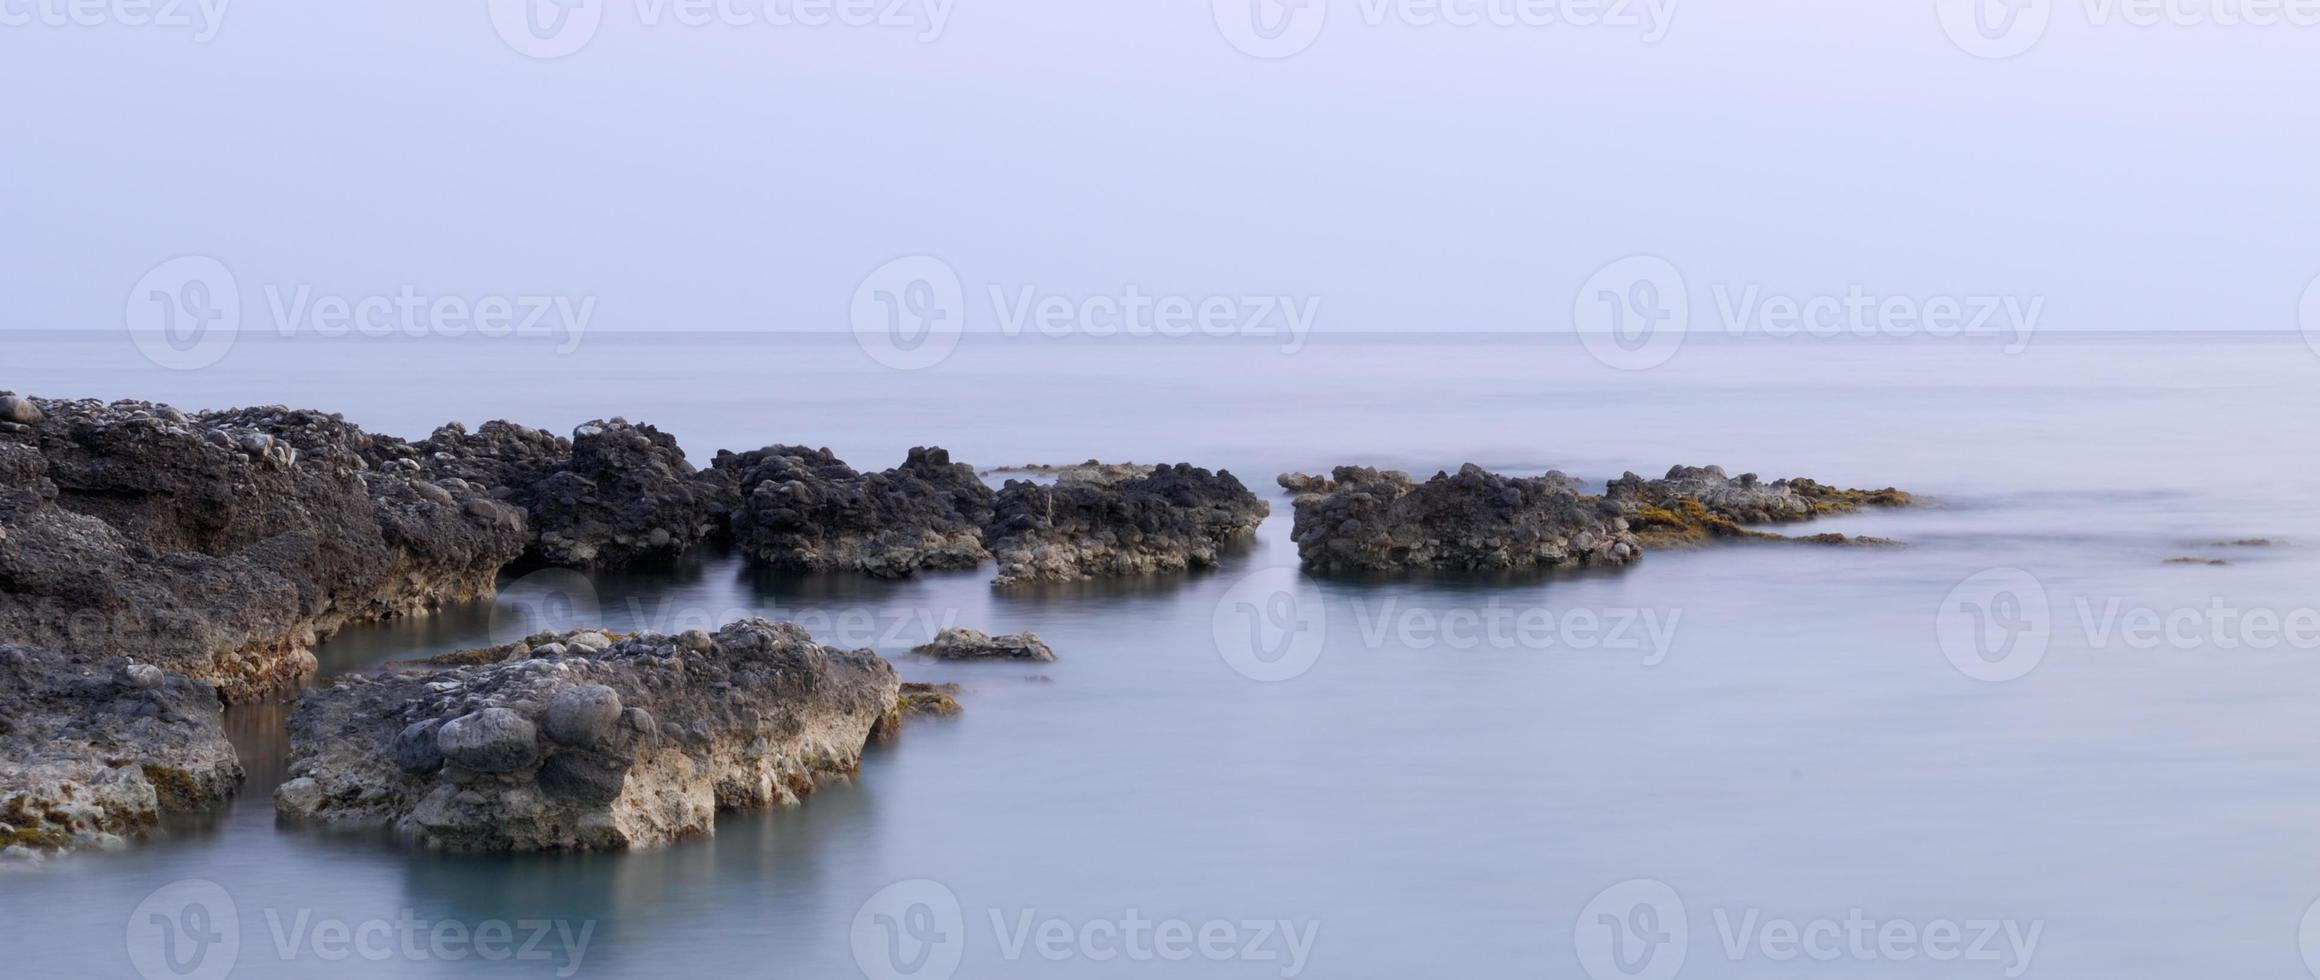 Serenity by the sea photo